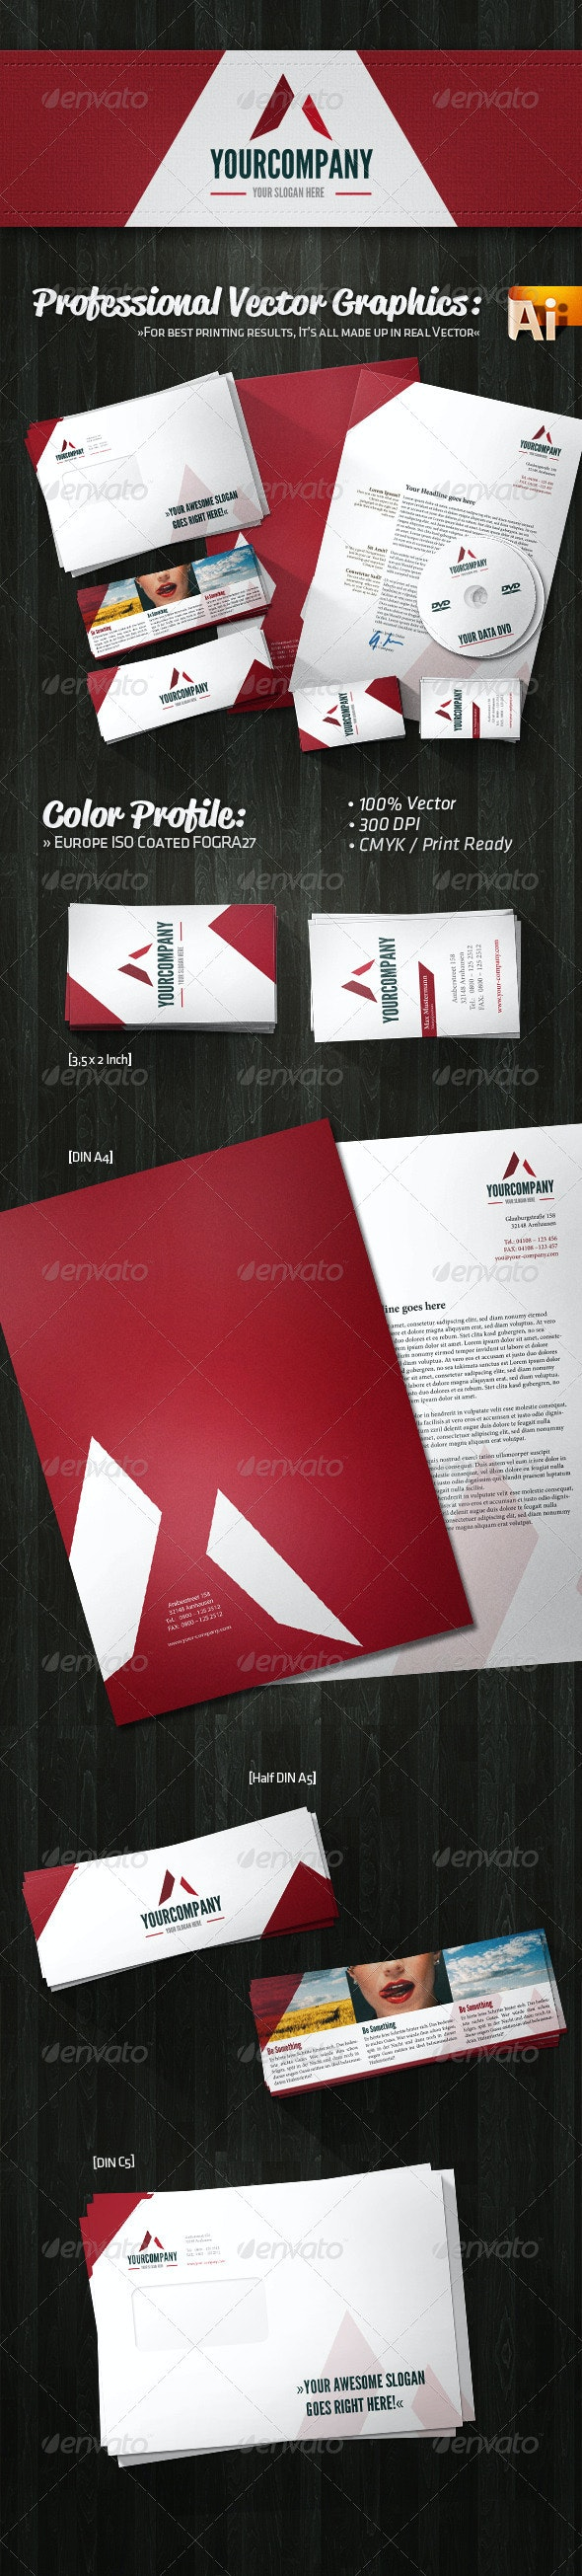 Professional Creative Agency Corporate Identity - Stationery Print Templates